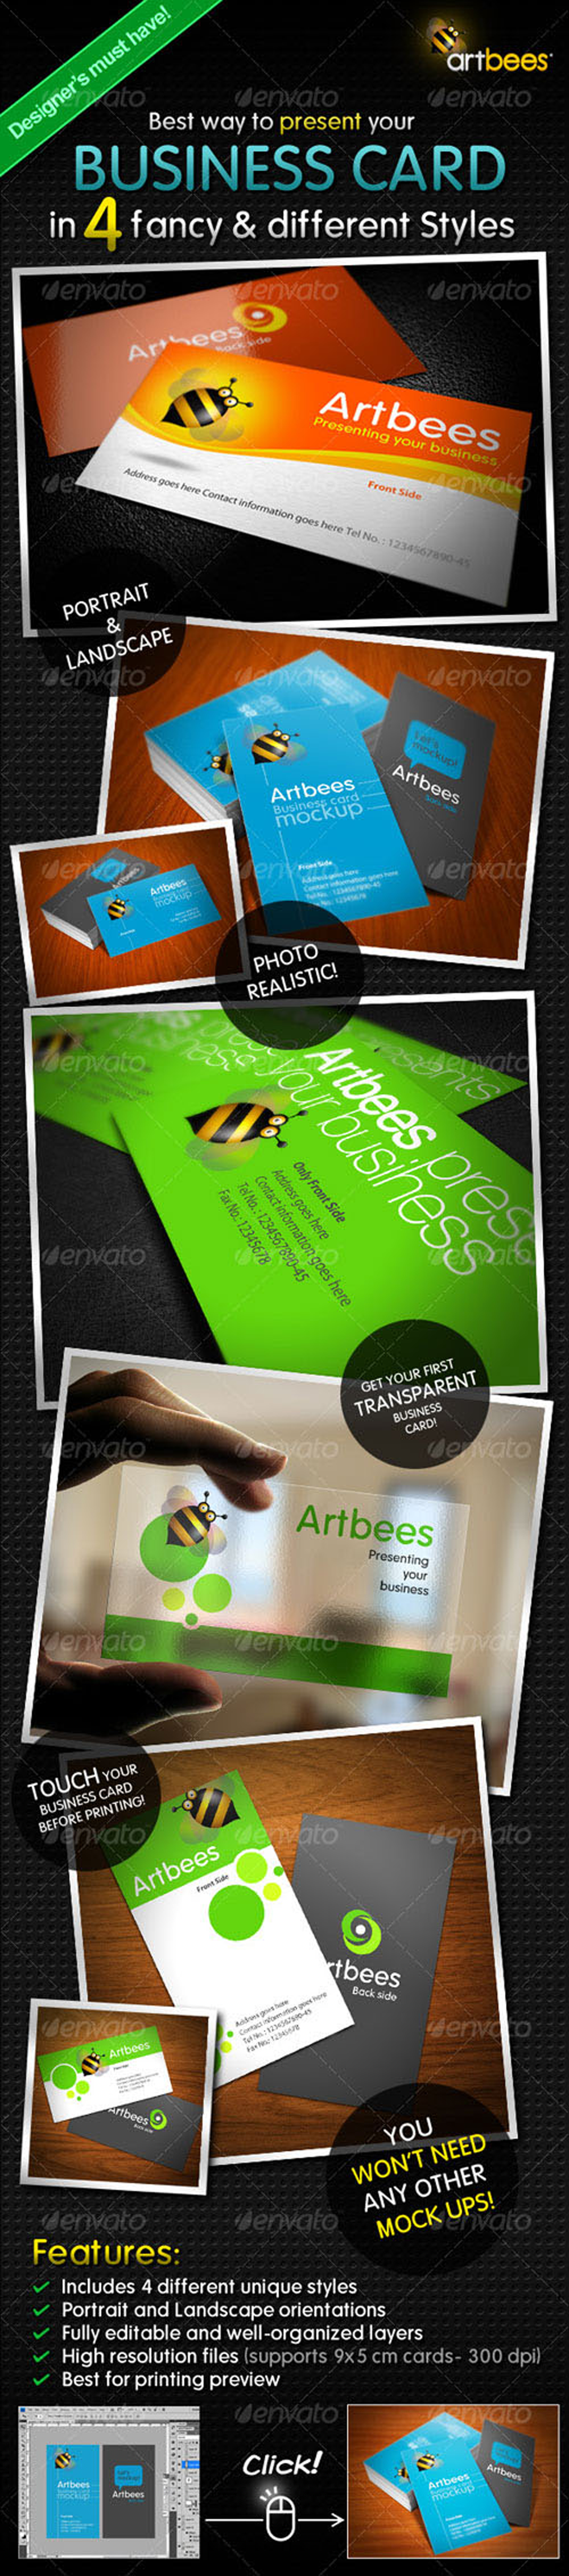 graphicriver_great-_business_card_mock_up_pack_4_styles_preview